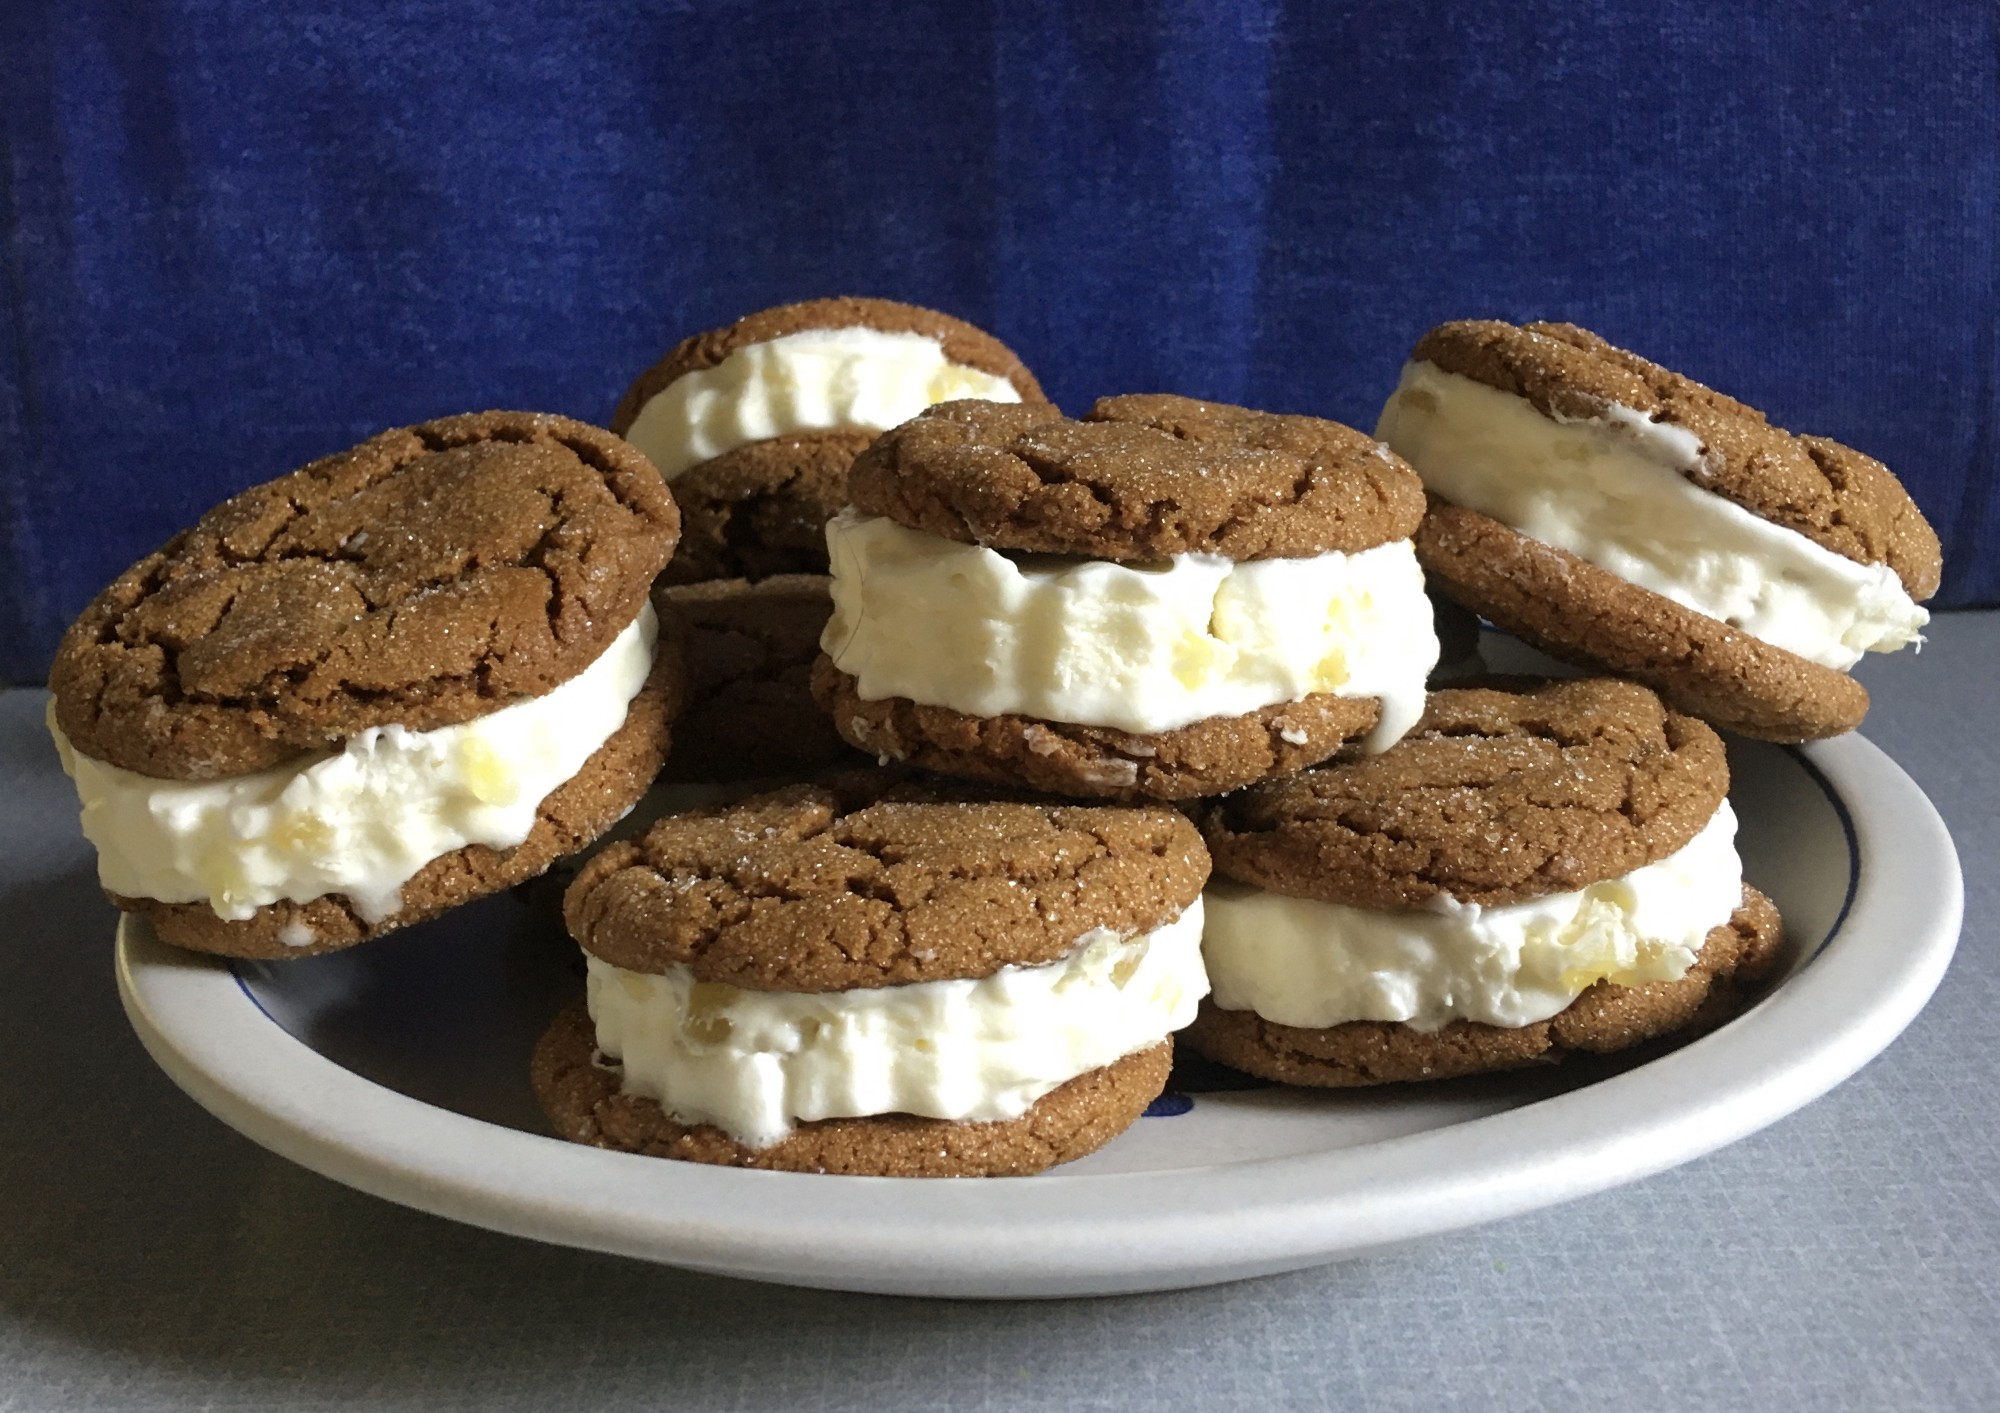 A white platter piled high with ice cream sandwiches made with ginger cookies.